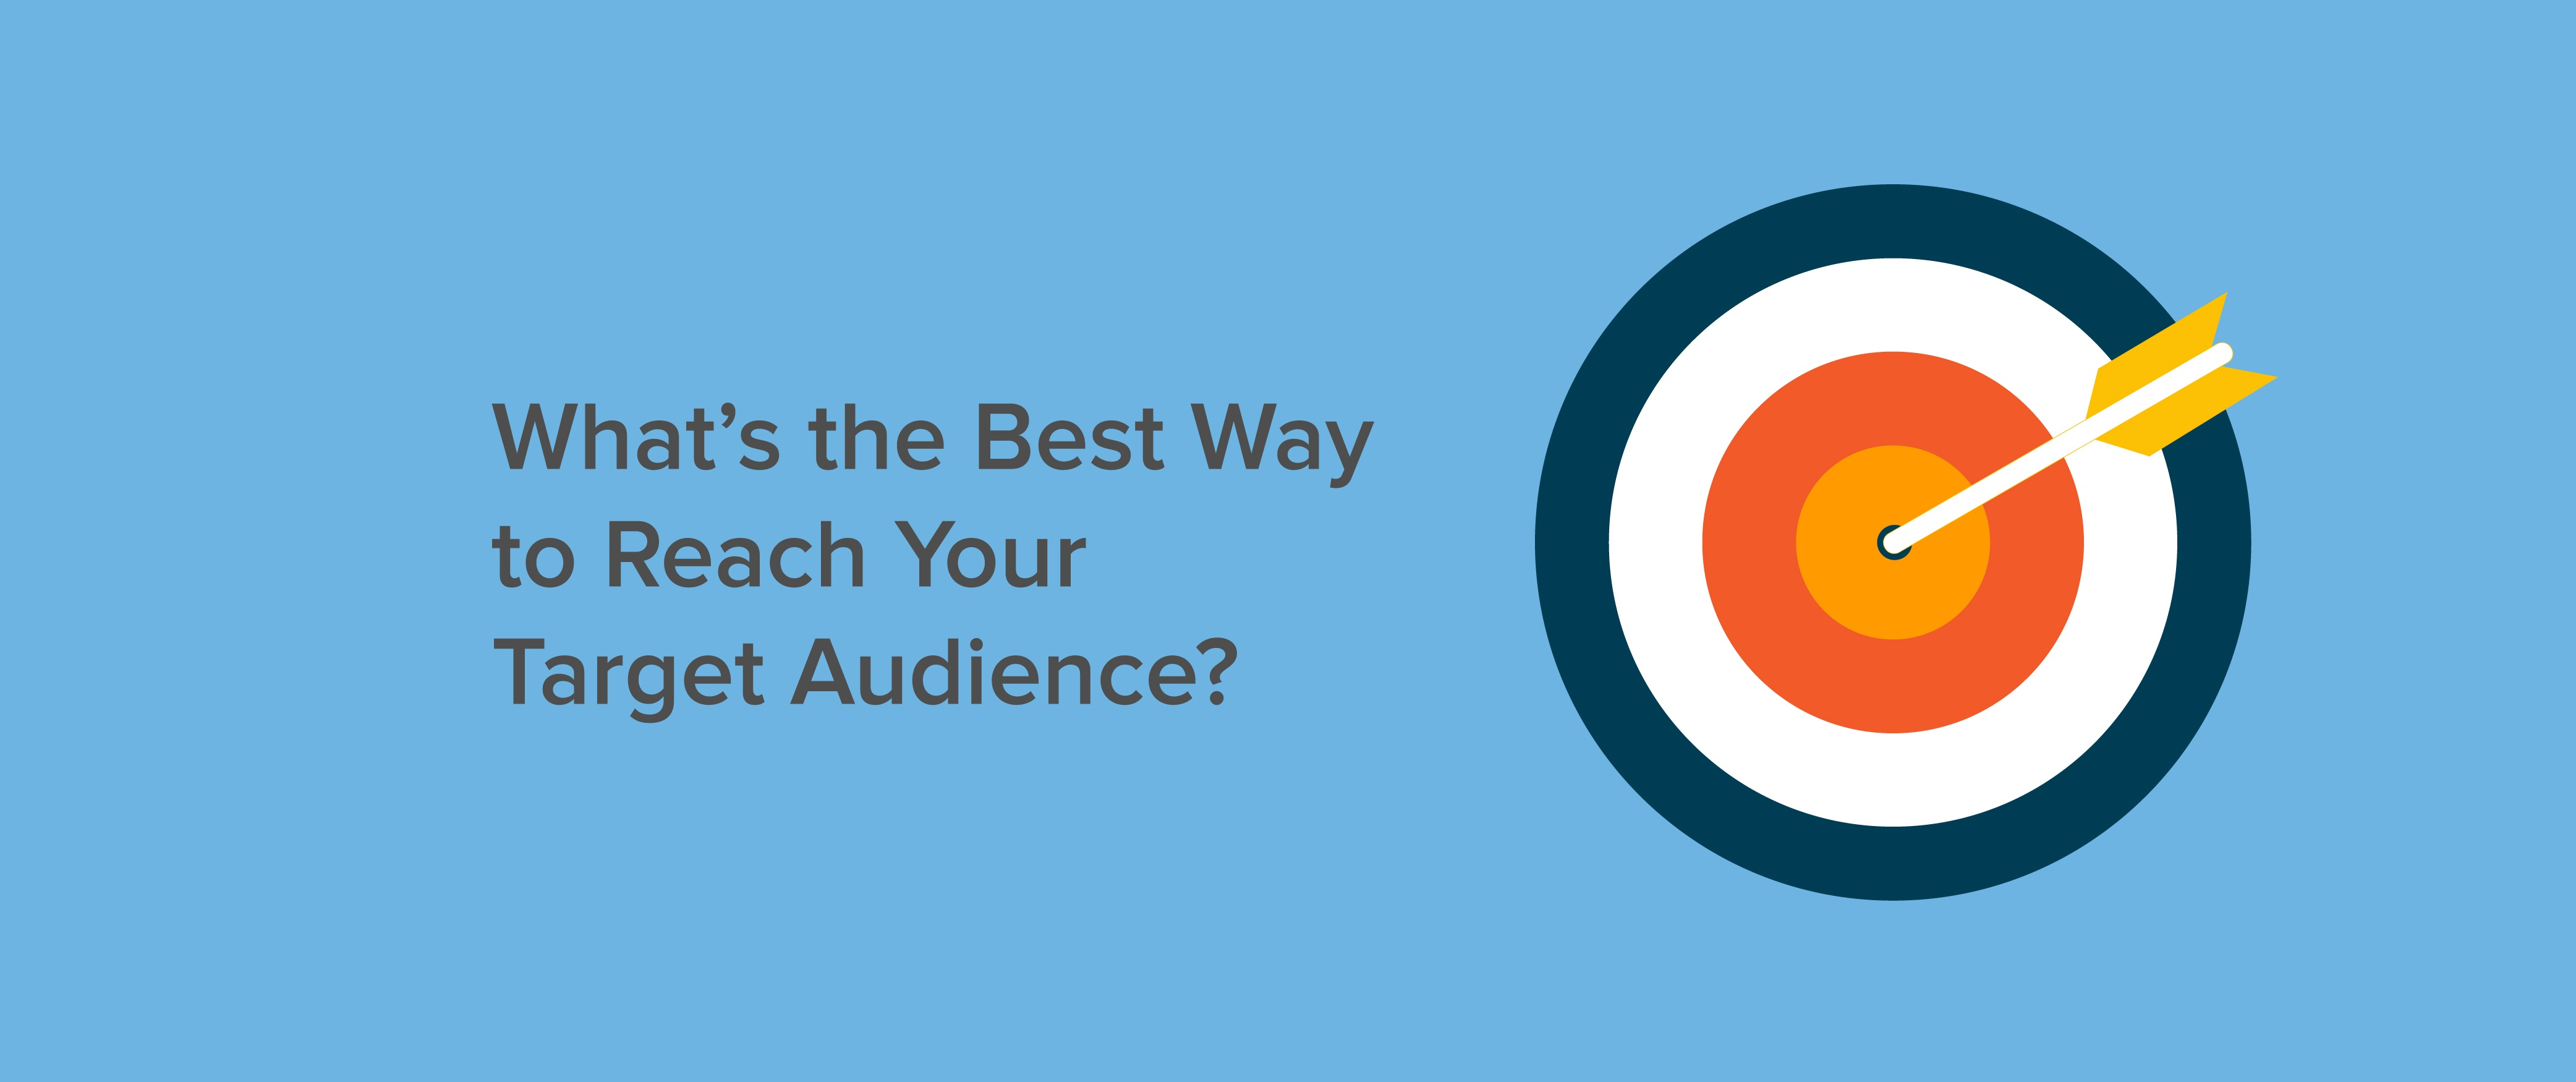 What's the Best Way to Reach Your Target Audience?